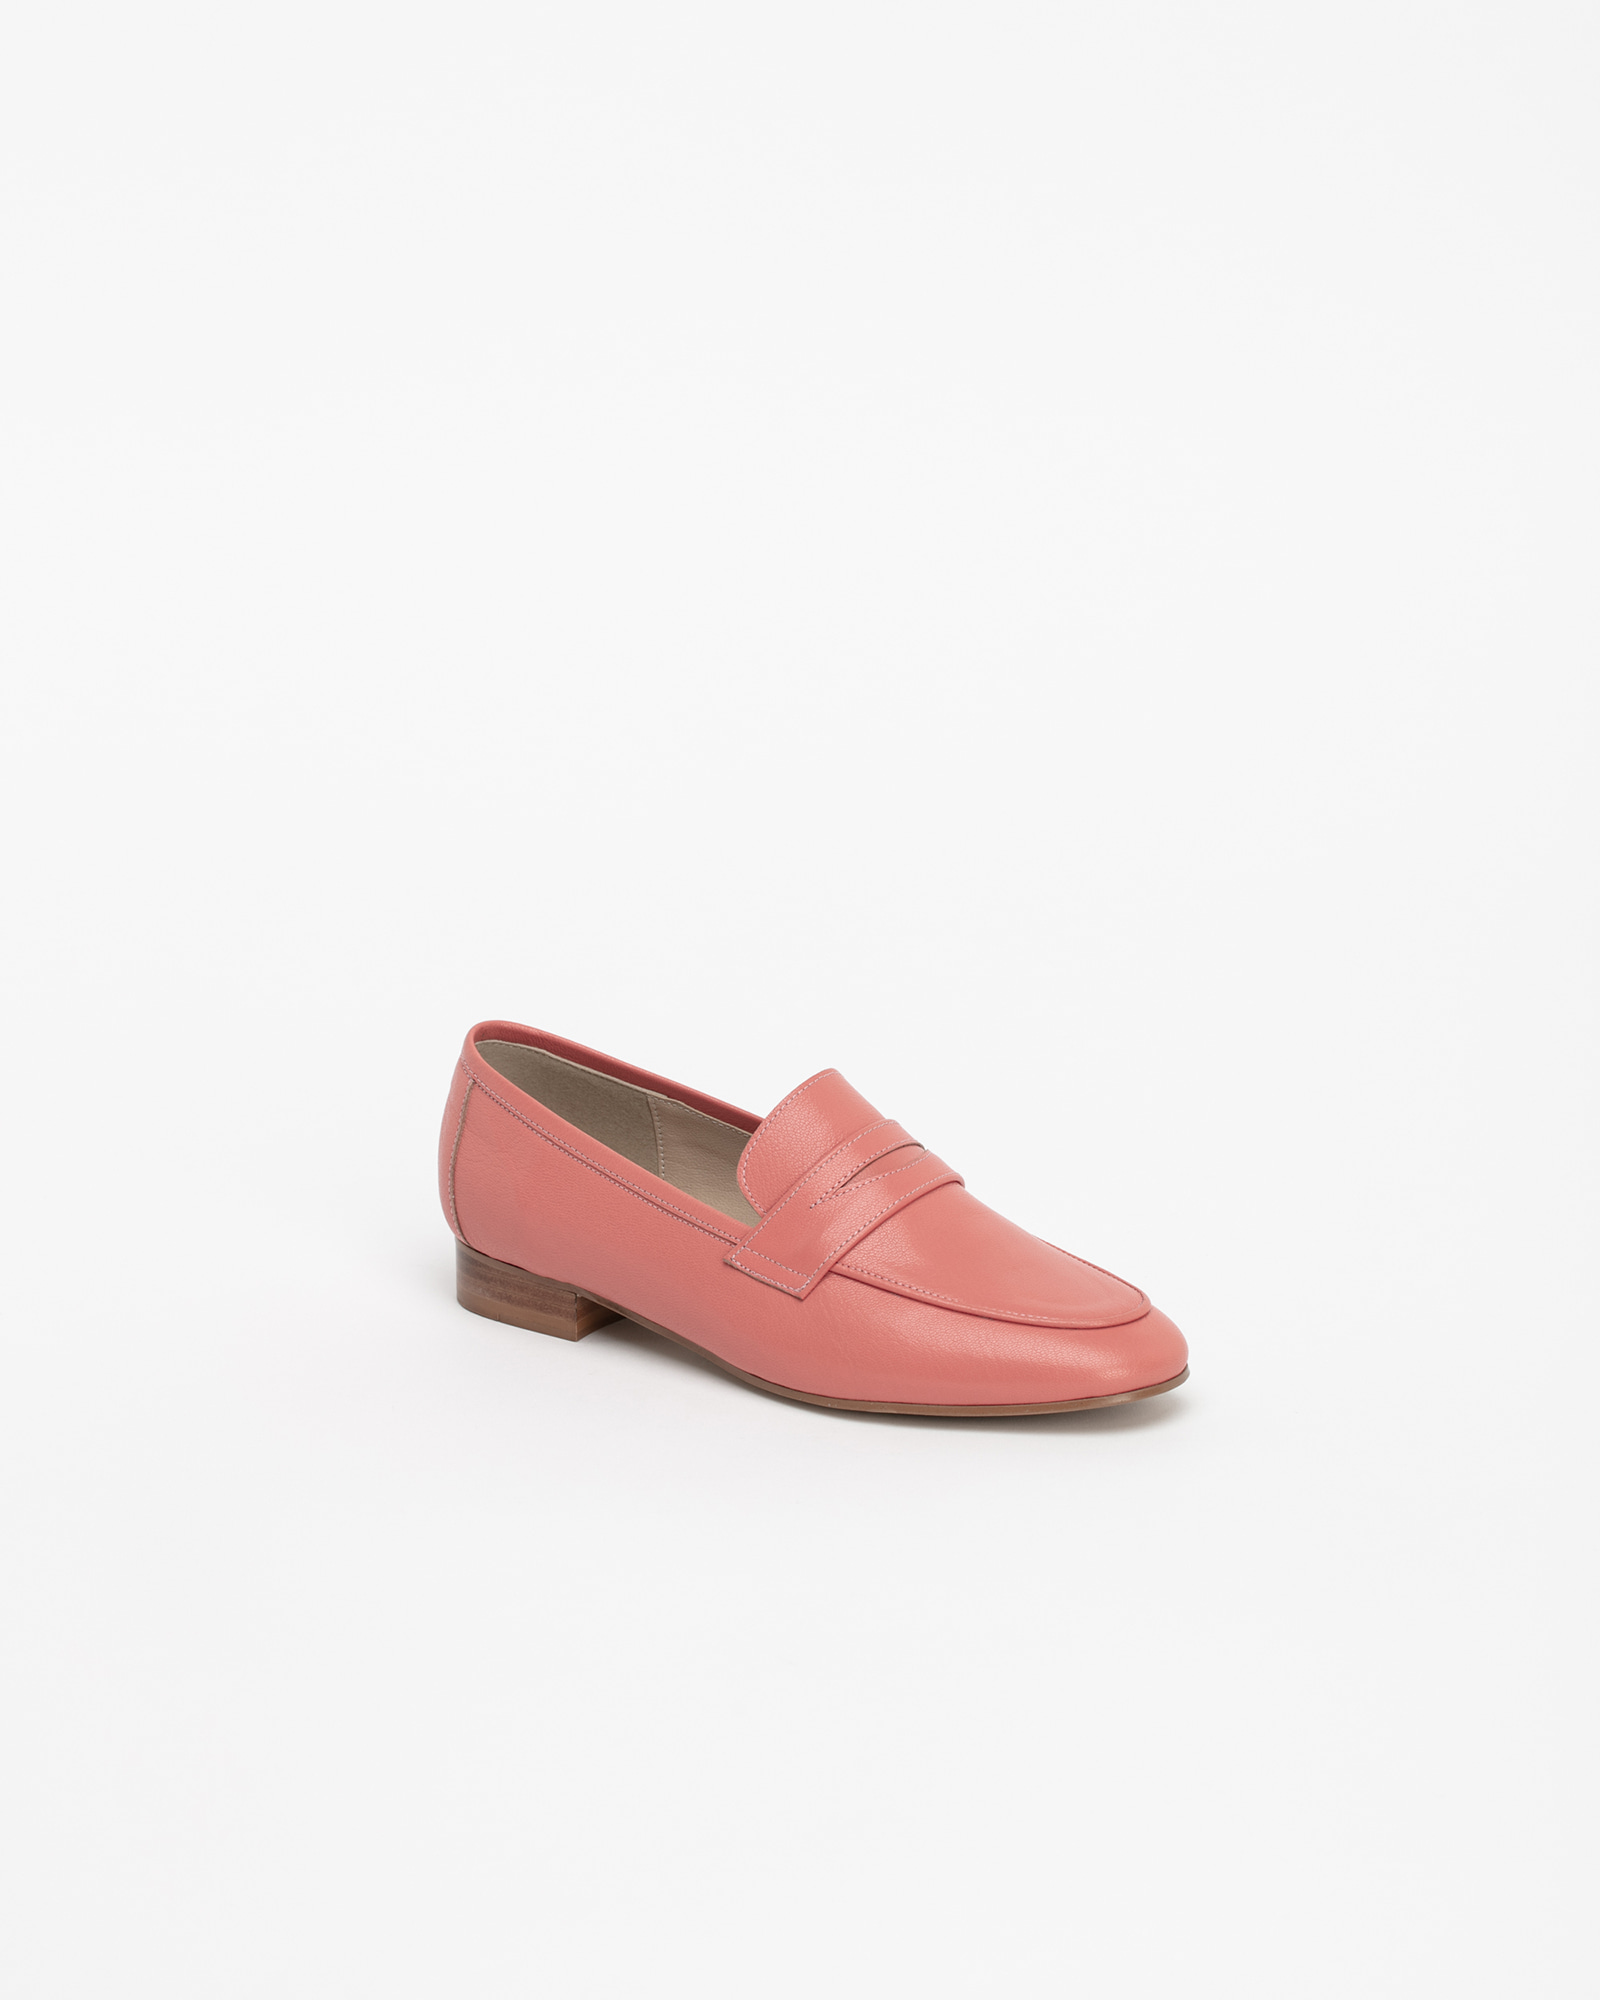 Sante Soft Loafers in Coral Pink